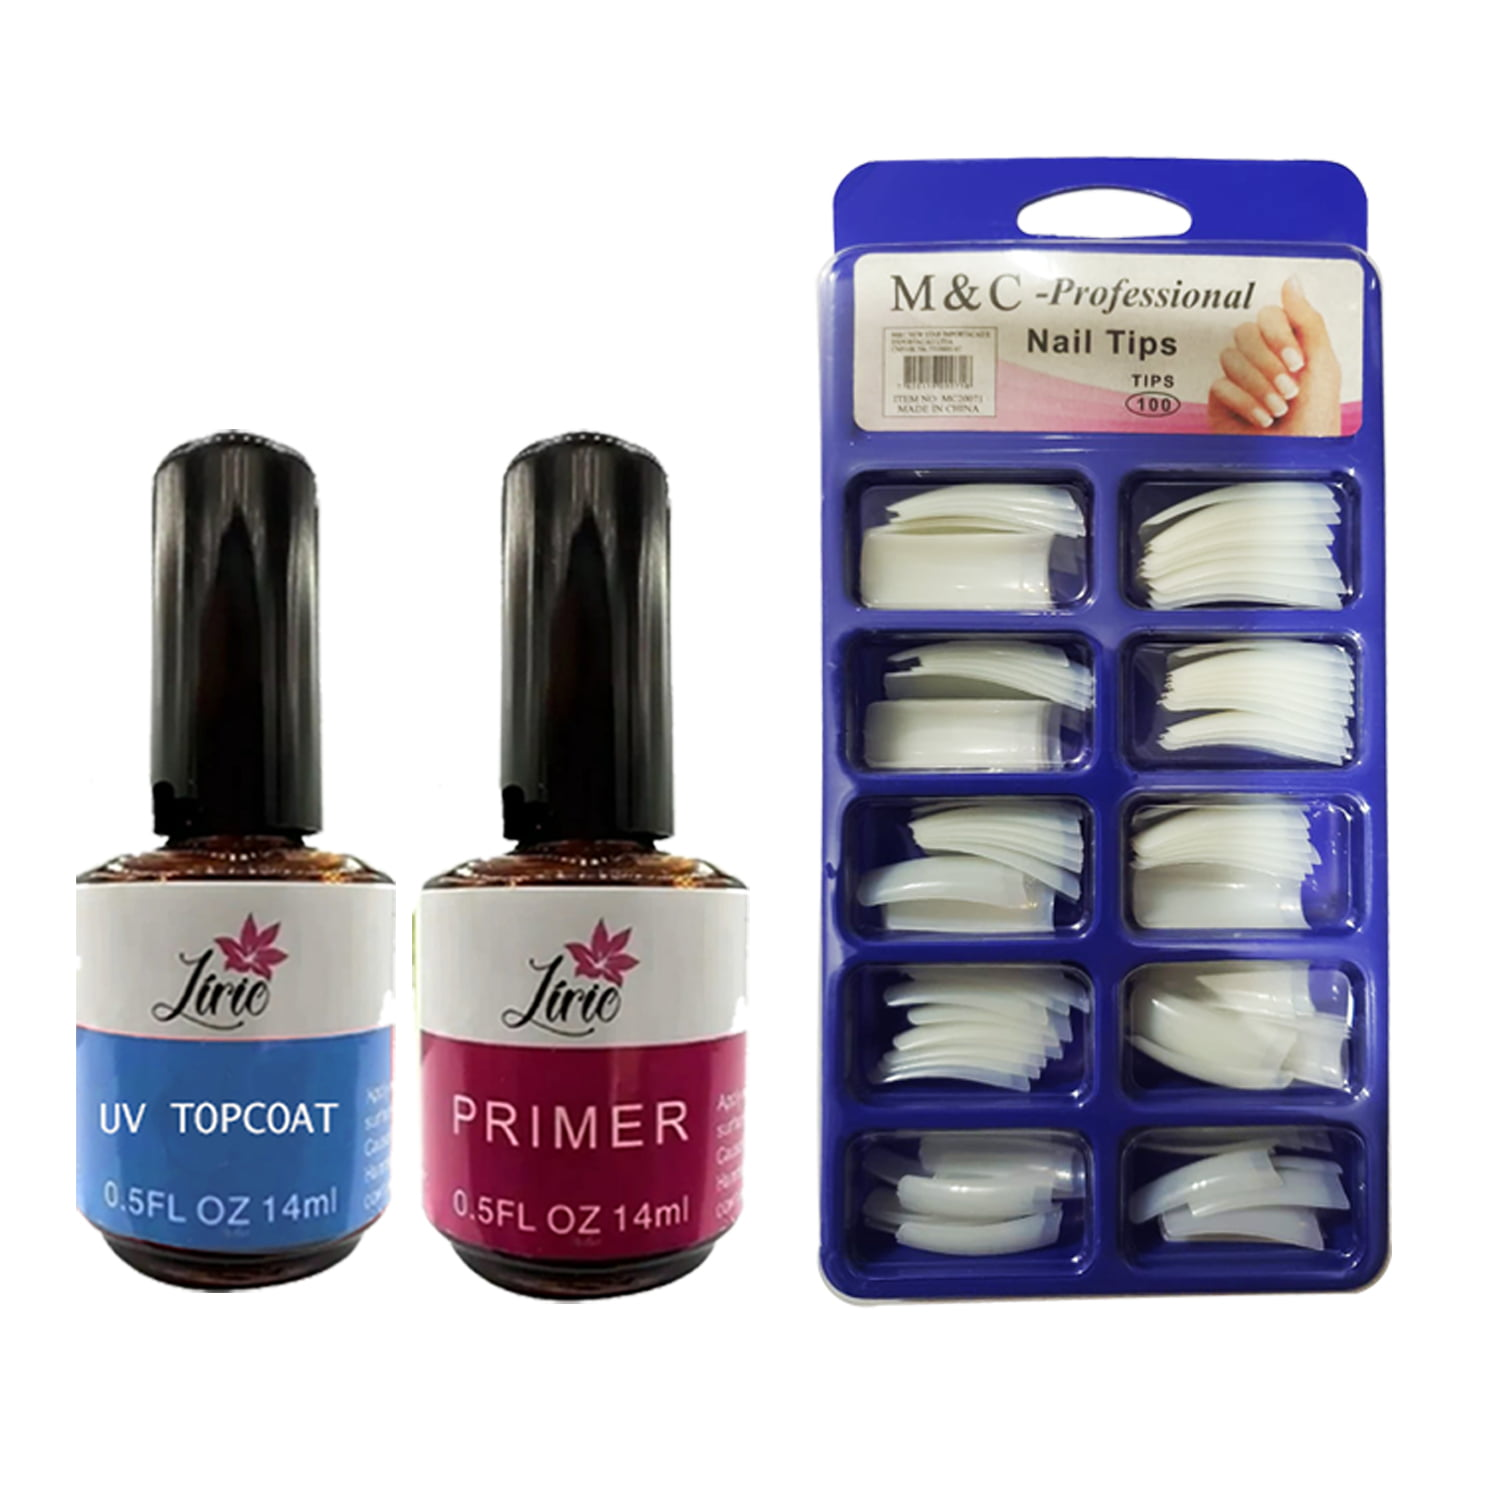 Kit Unha Gel Topcoat Lirio + Primer + 100 Tips